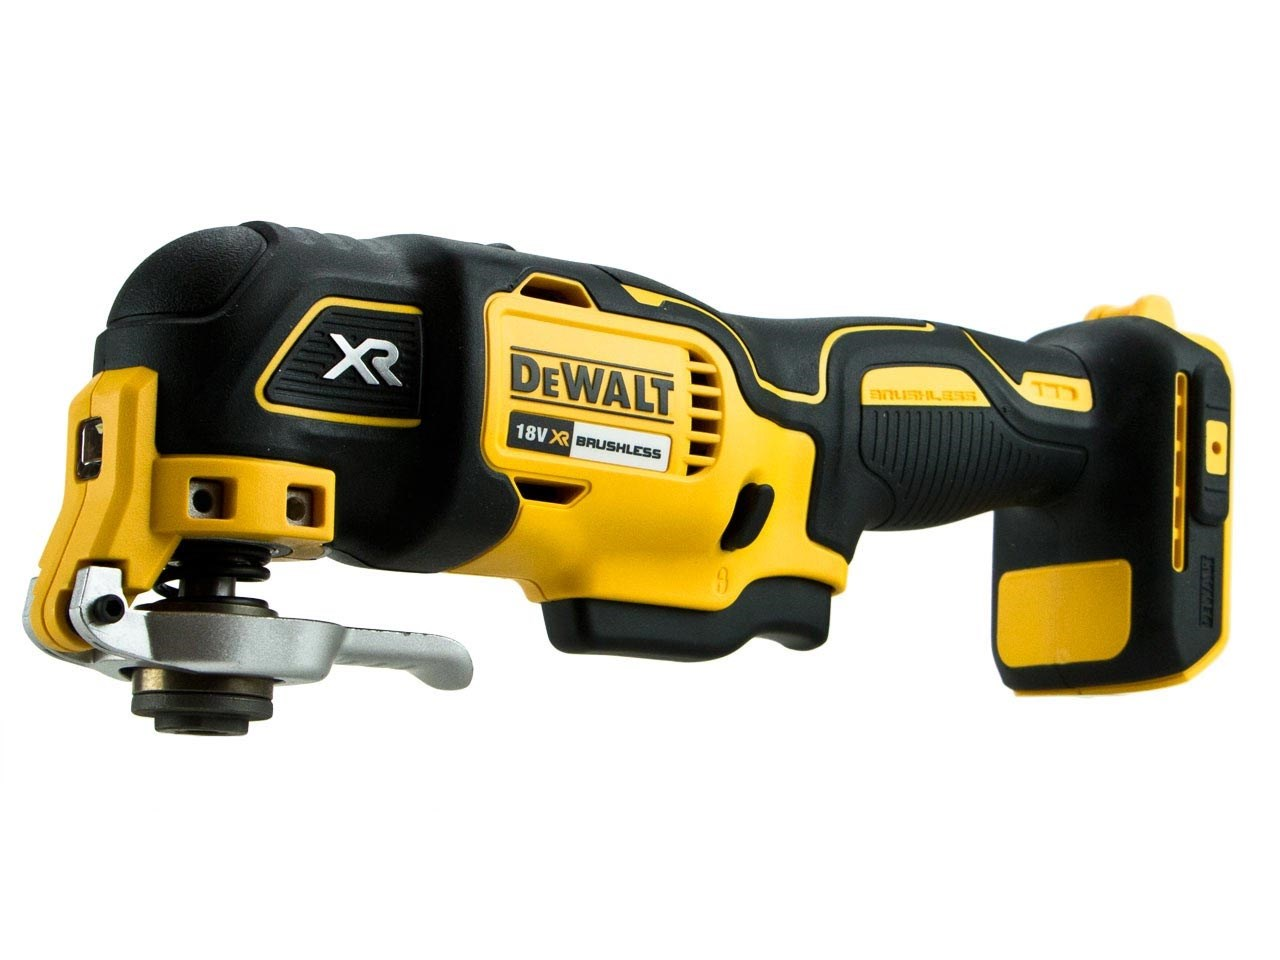 """The following are trademarks for one or more DEWALT power tools, accessories, anchors and concrete adhesives: The yellow and black color scheme; the """"D""""-shaped air intake grill; the array of pyramids on the handgrip; the kit box configuration; and the array of lozenge-shaped humps on the surface of the tool."""